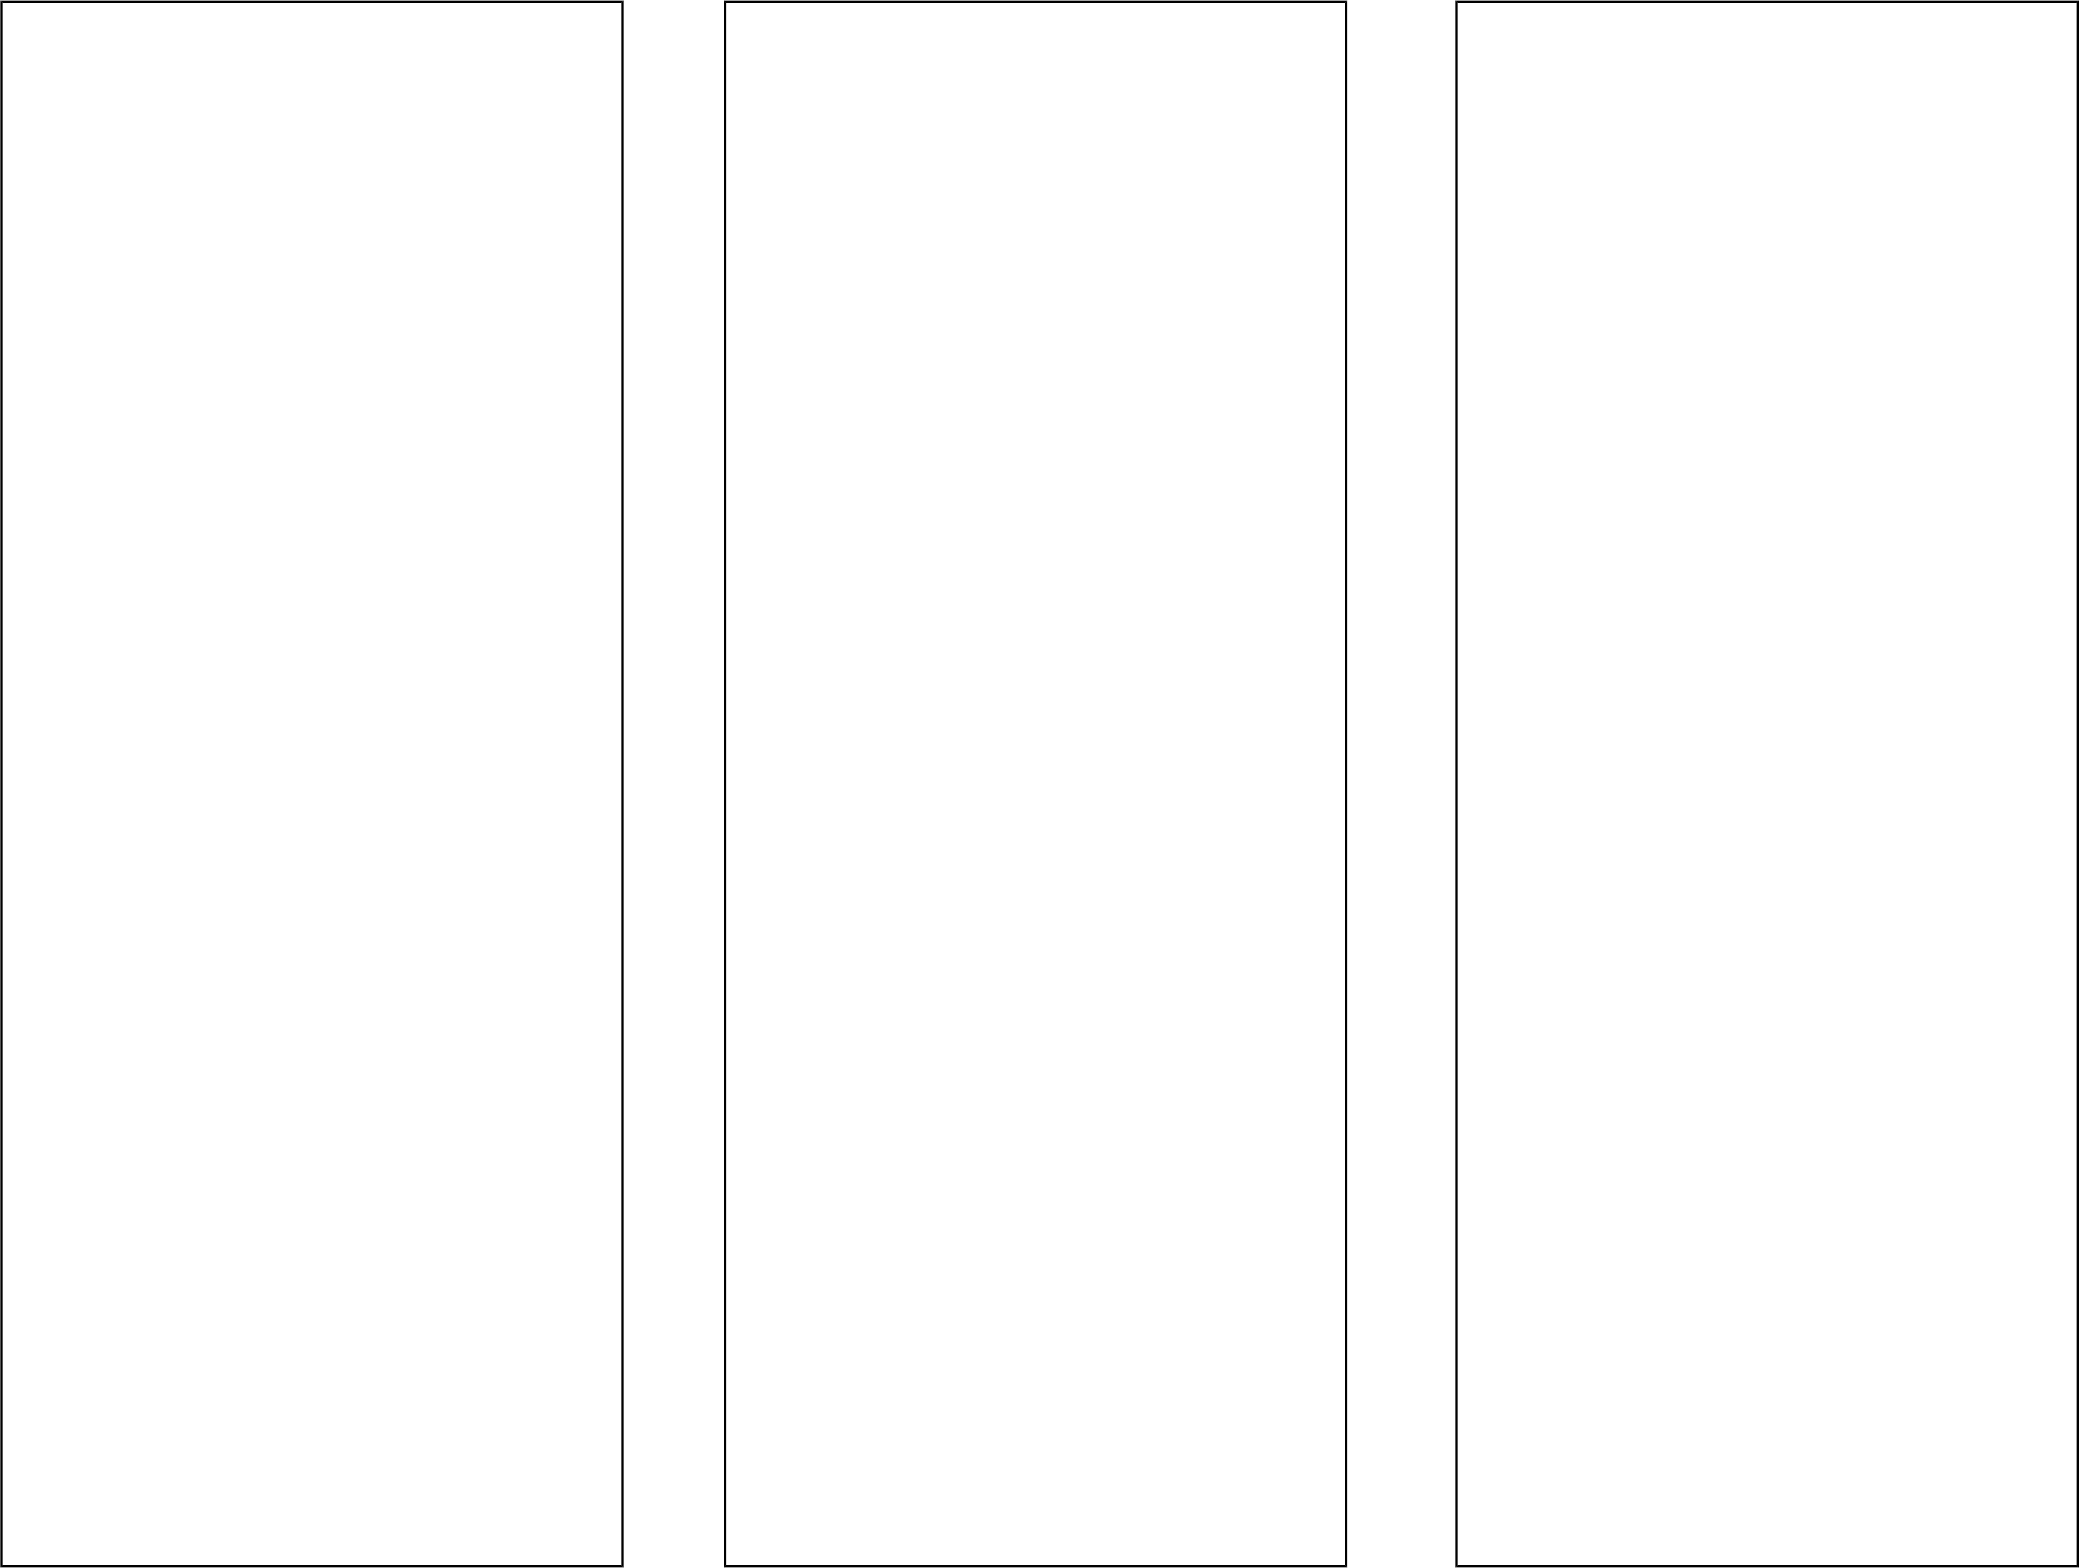 Blank Brochure Template Free Download – Blank Brochure Template Word